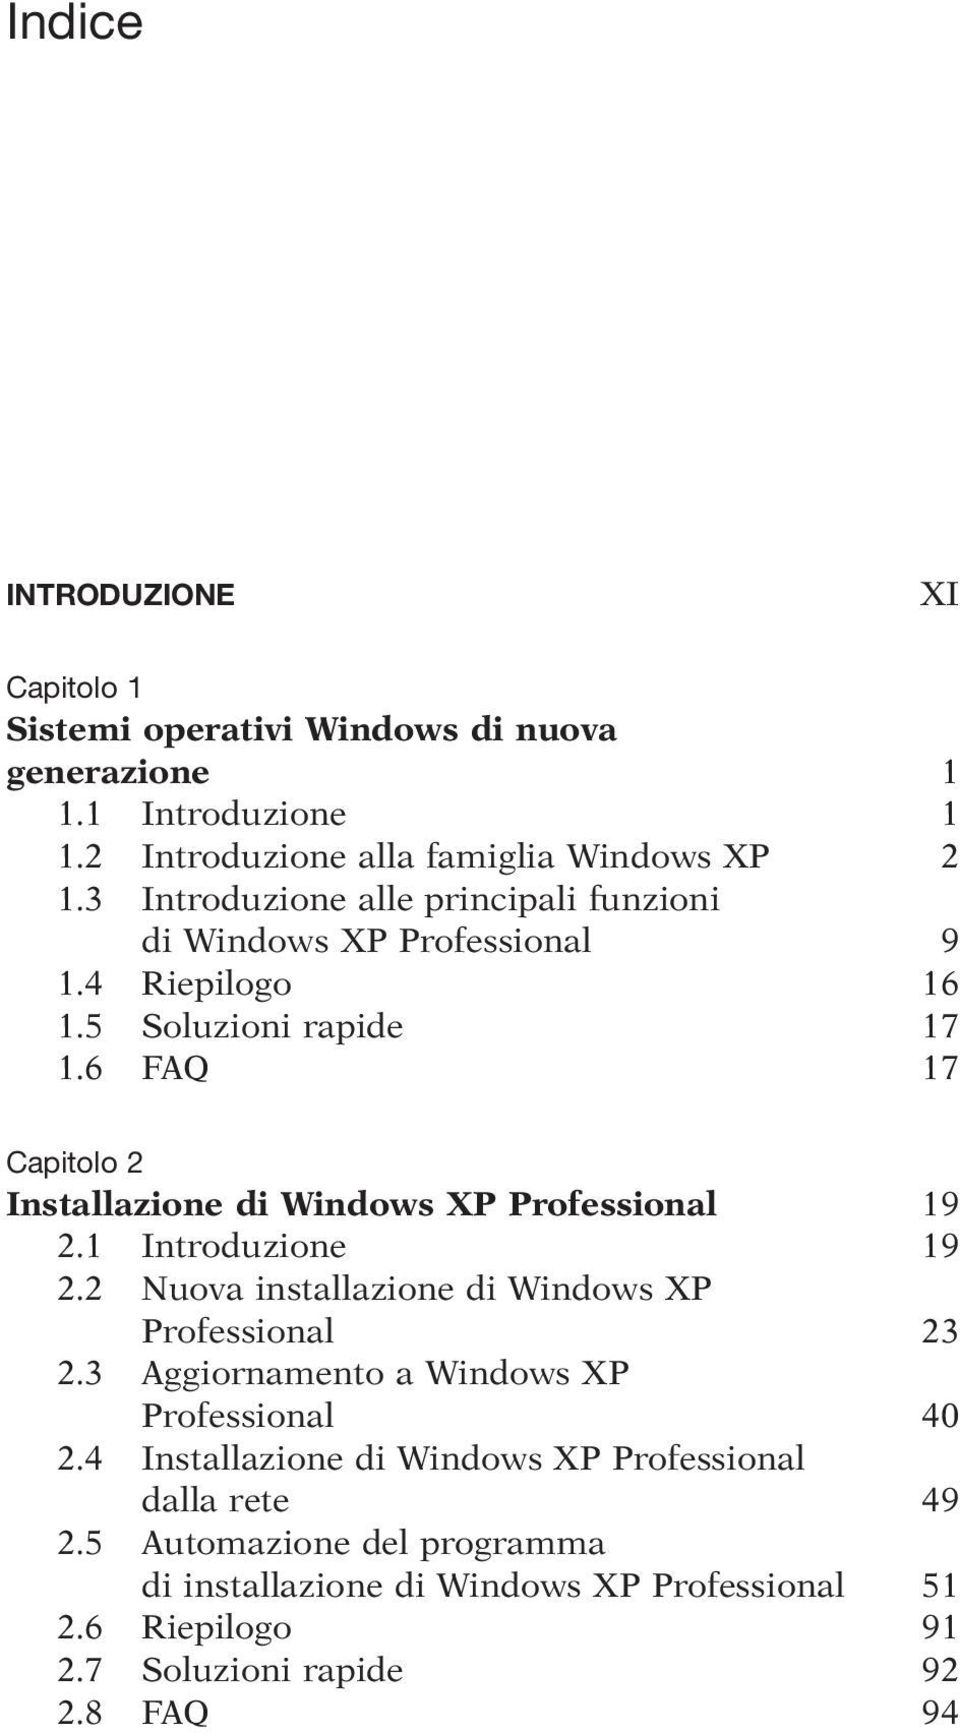 6 FAQ 17 Capitolo 2 Installazione di Windows XP Professional 19 2.1 Introduzione 19 2.2 Nuova installazione di Windows XP Professional 23 2.